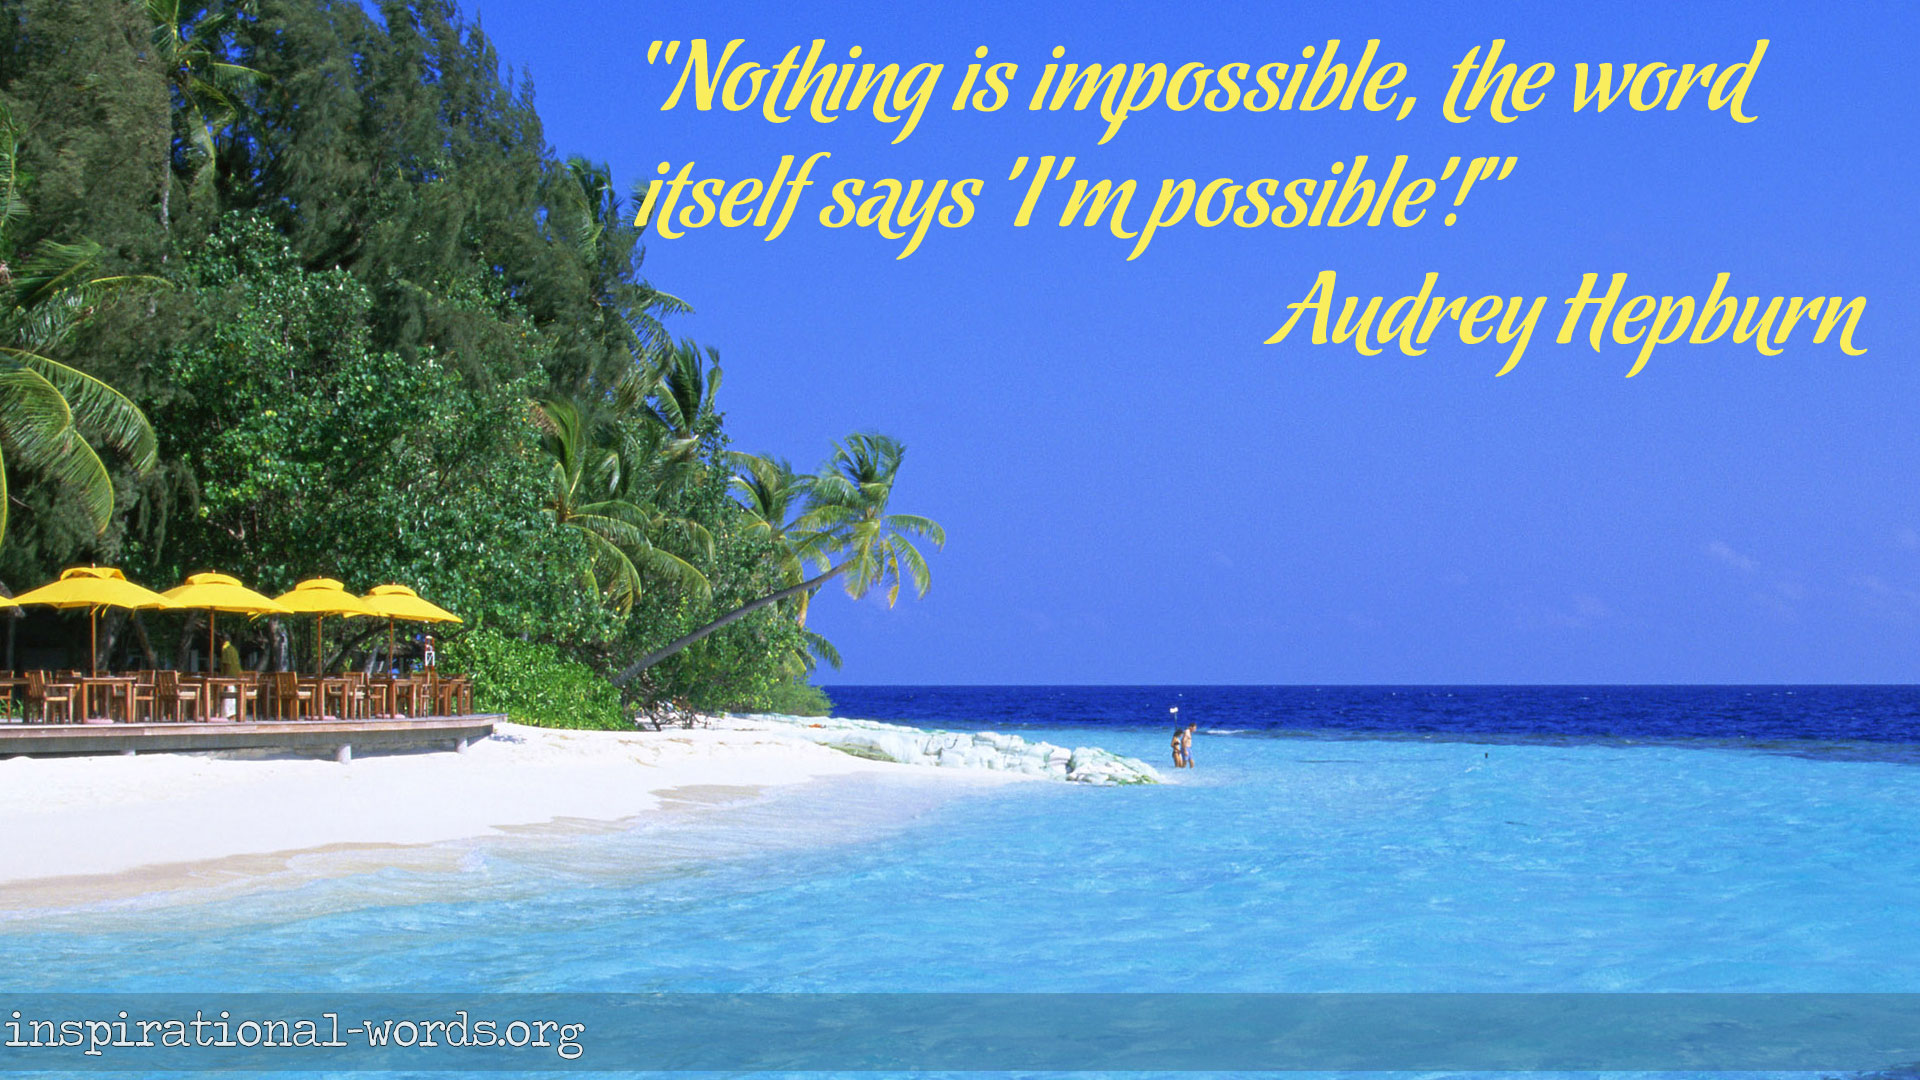 Inspirational Wallpaper Quote by Audrey Hepburn